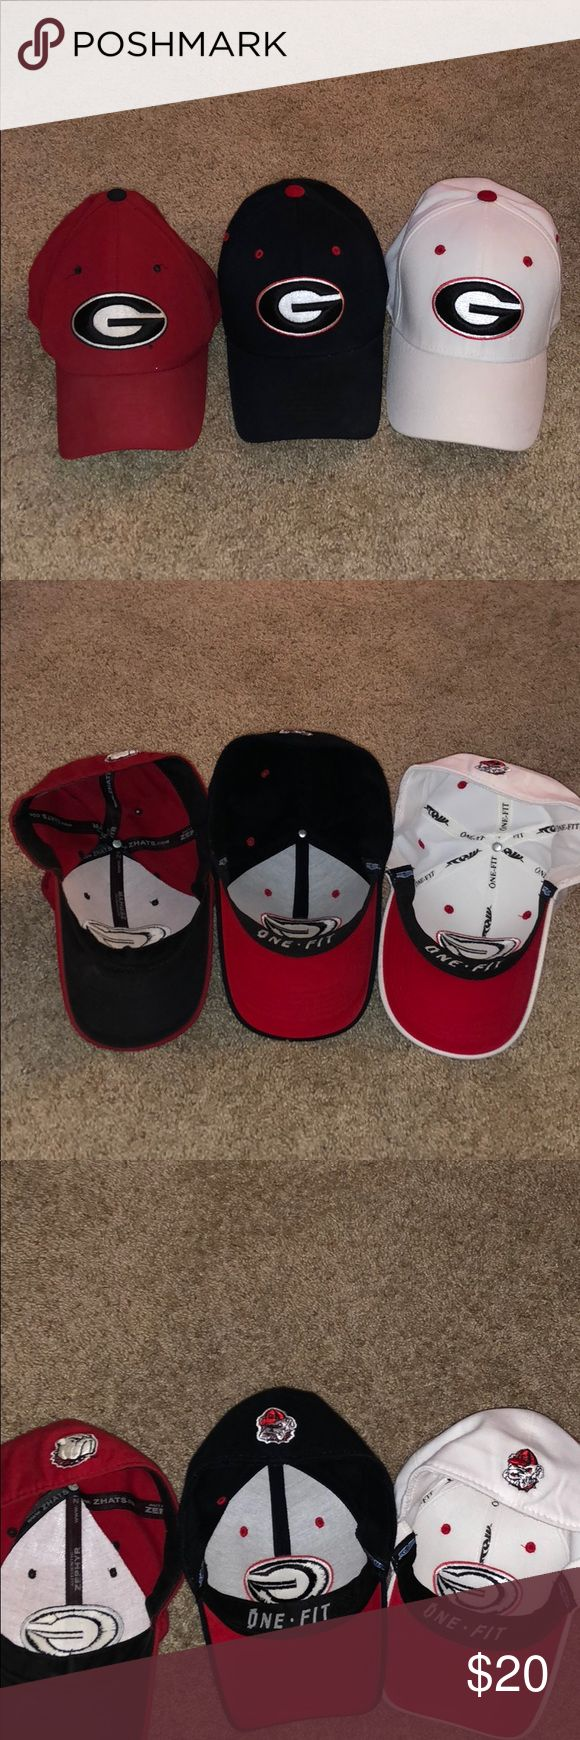 Lot of Fitted Used Georgia Bulldog Hats Lot of Fitted Used Georgia Bulldog Hats   -Black Hat - Top of the World - No Specified Size  -White Hat - Top of the World - L/XL  -Red Hat - Zephyr - 7 1/2  Please ask questions before purchasing. Accessories Hats